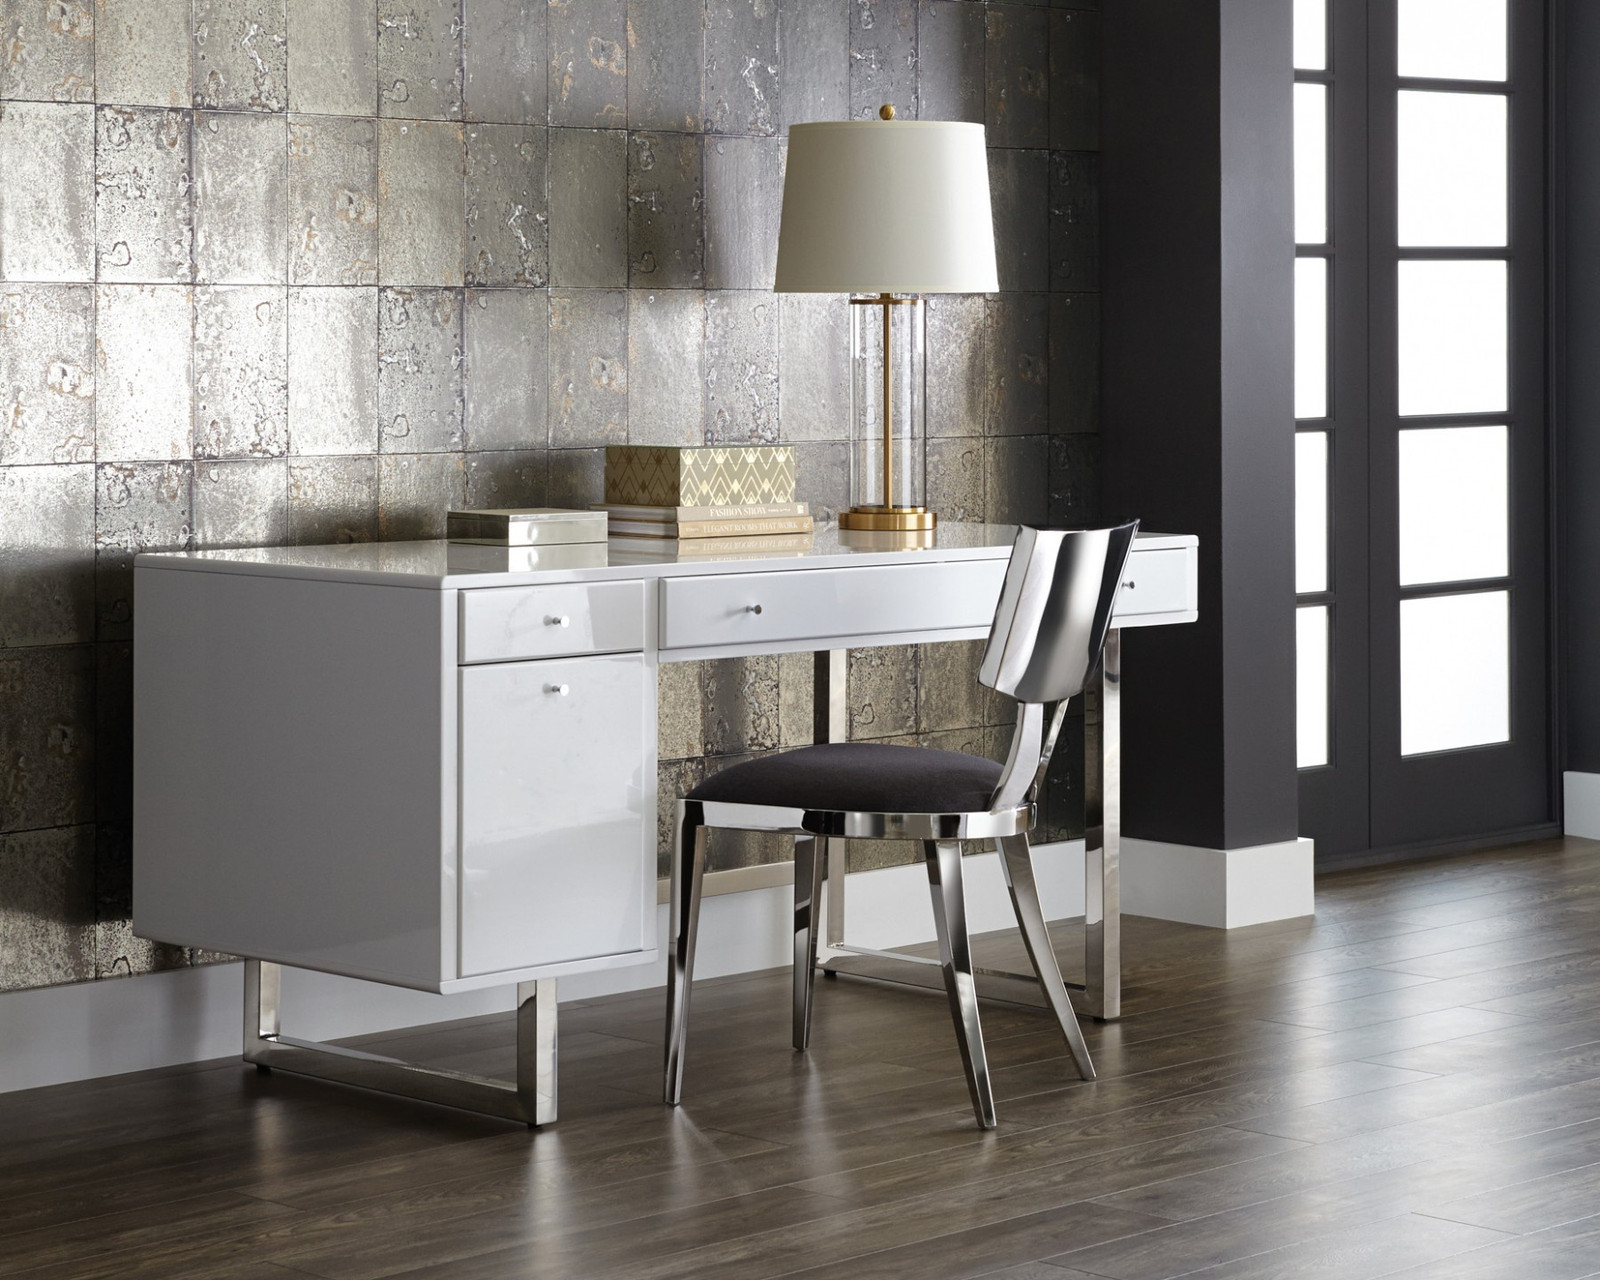 Furniture Markham Camden Desk Modern Furniture Markham Toronto